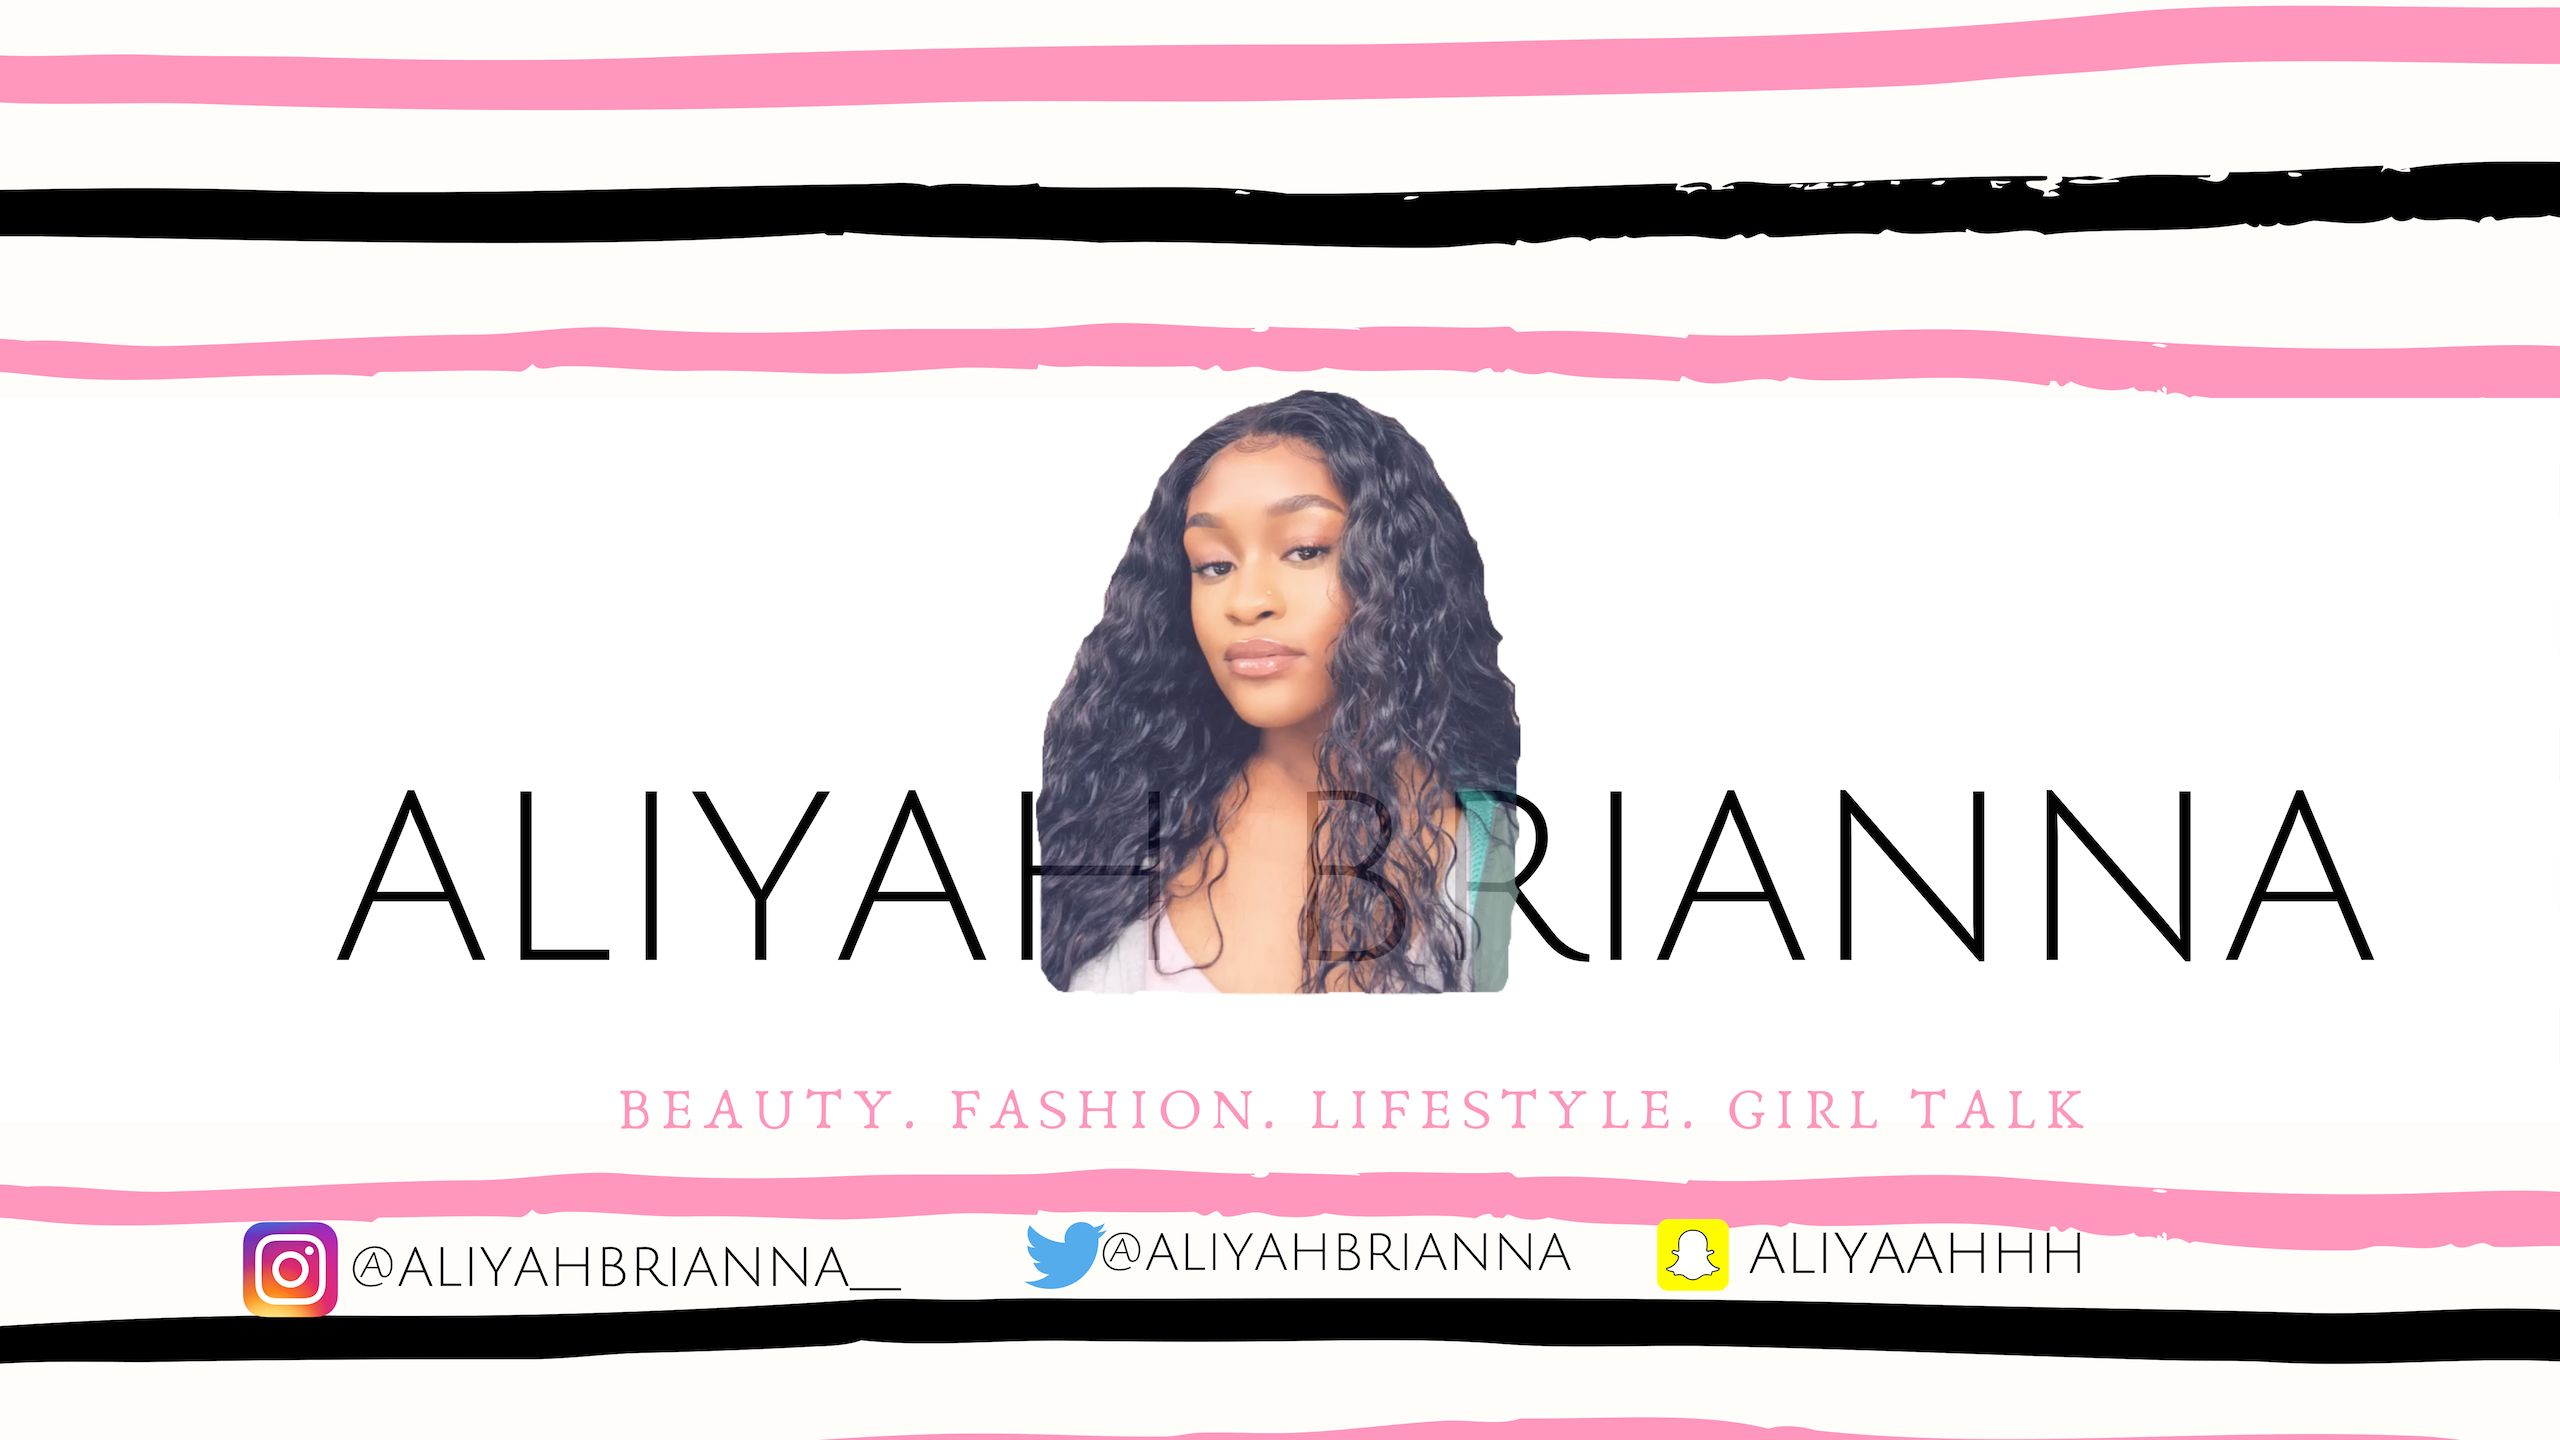 I Make Youtube Banners Here S Mine Dm Aliyahbrianna On Instagram If You Re Interested Youtube Channel Art Youtube Channel Ideas Youtube Banners